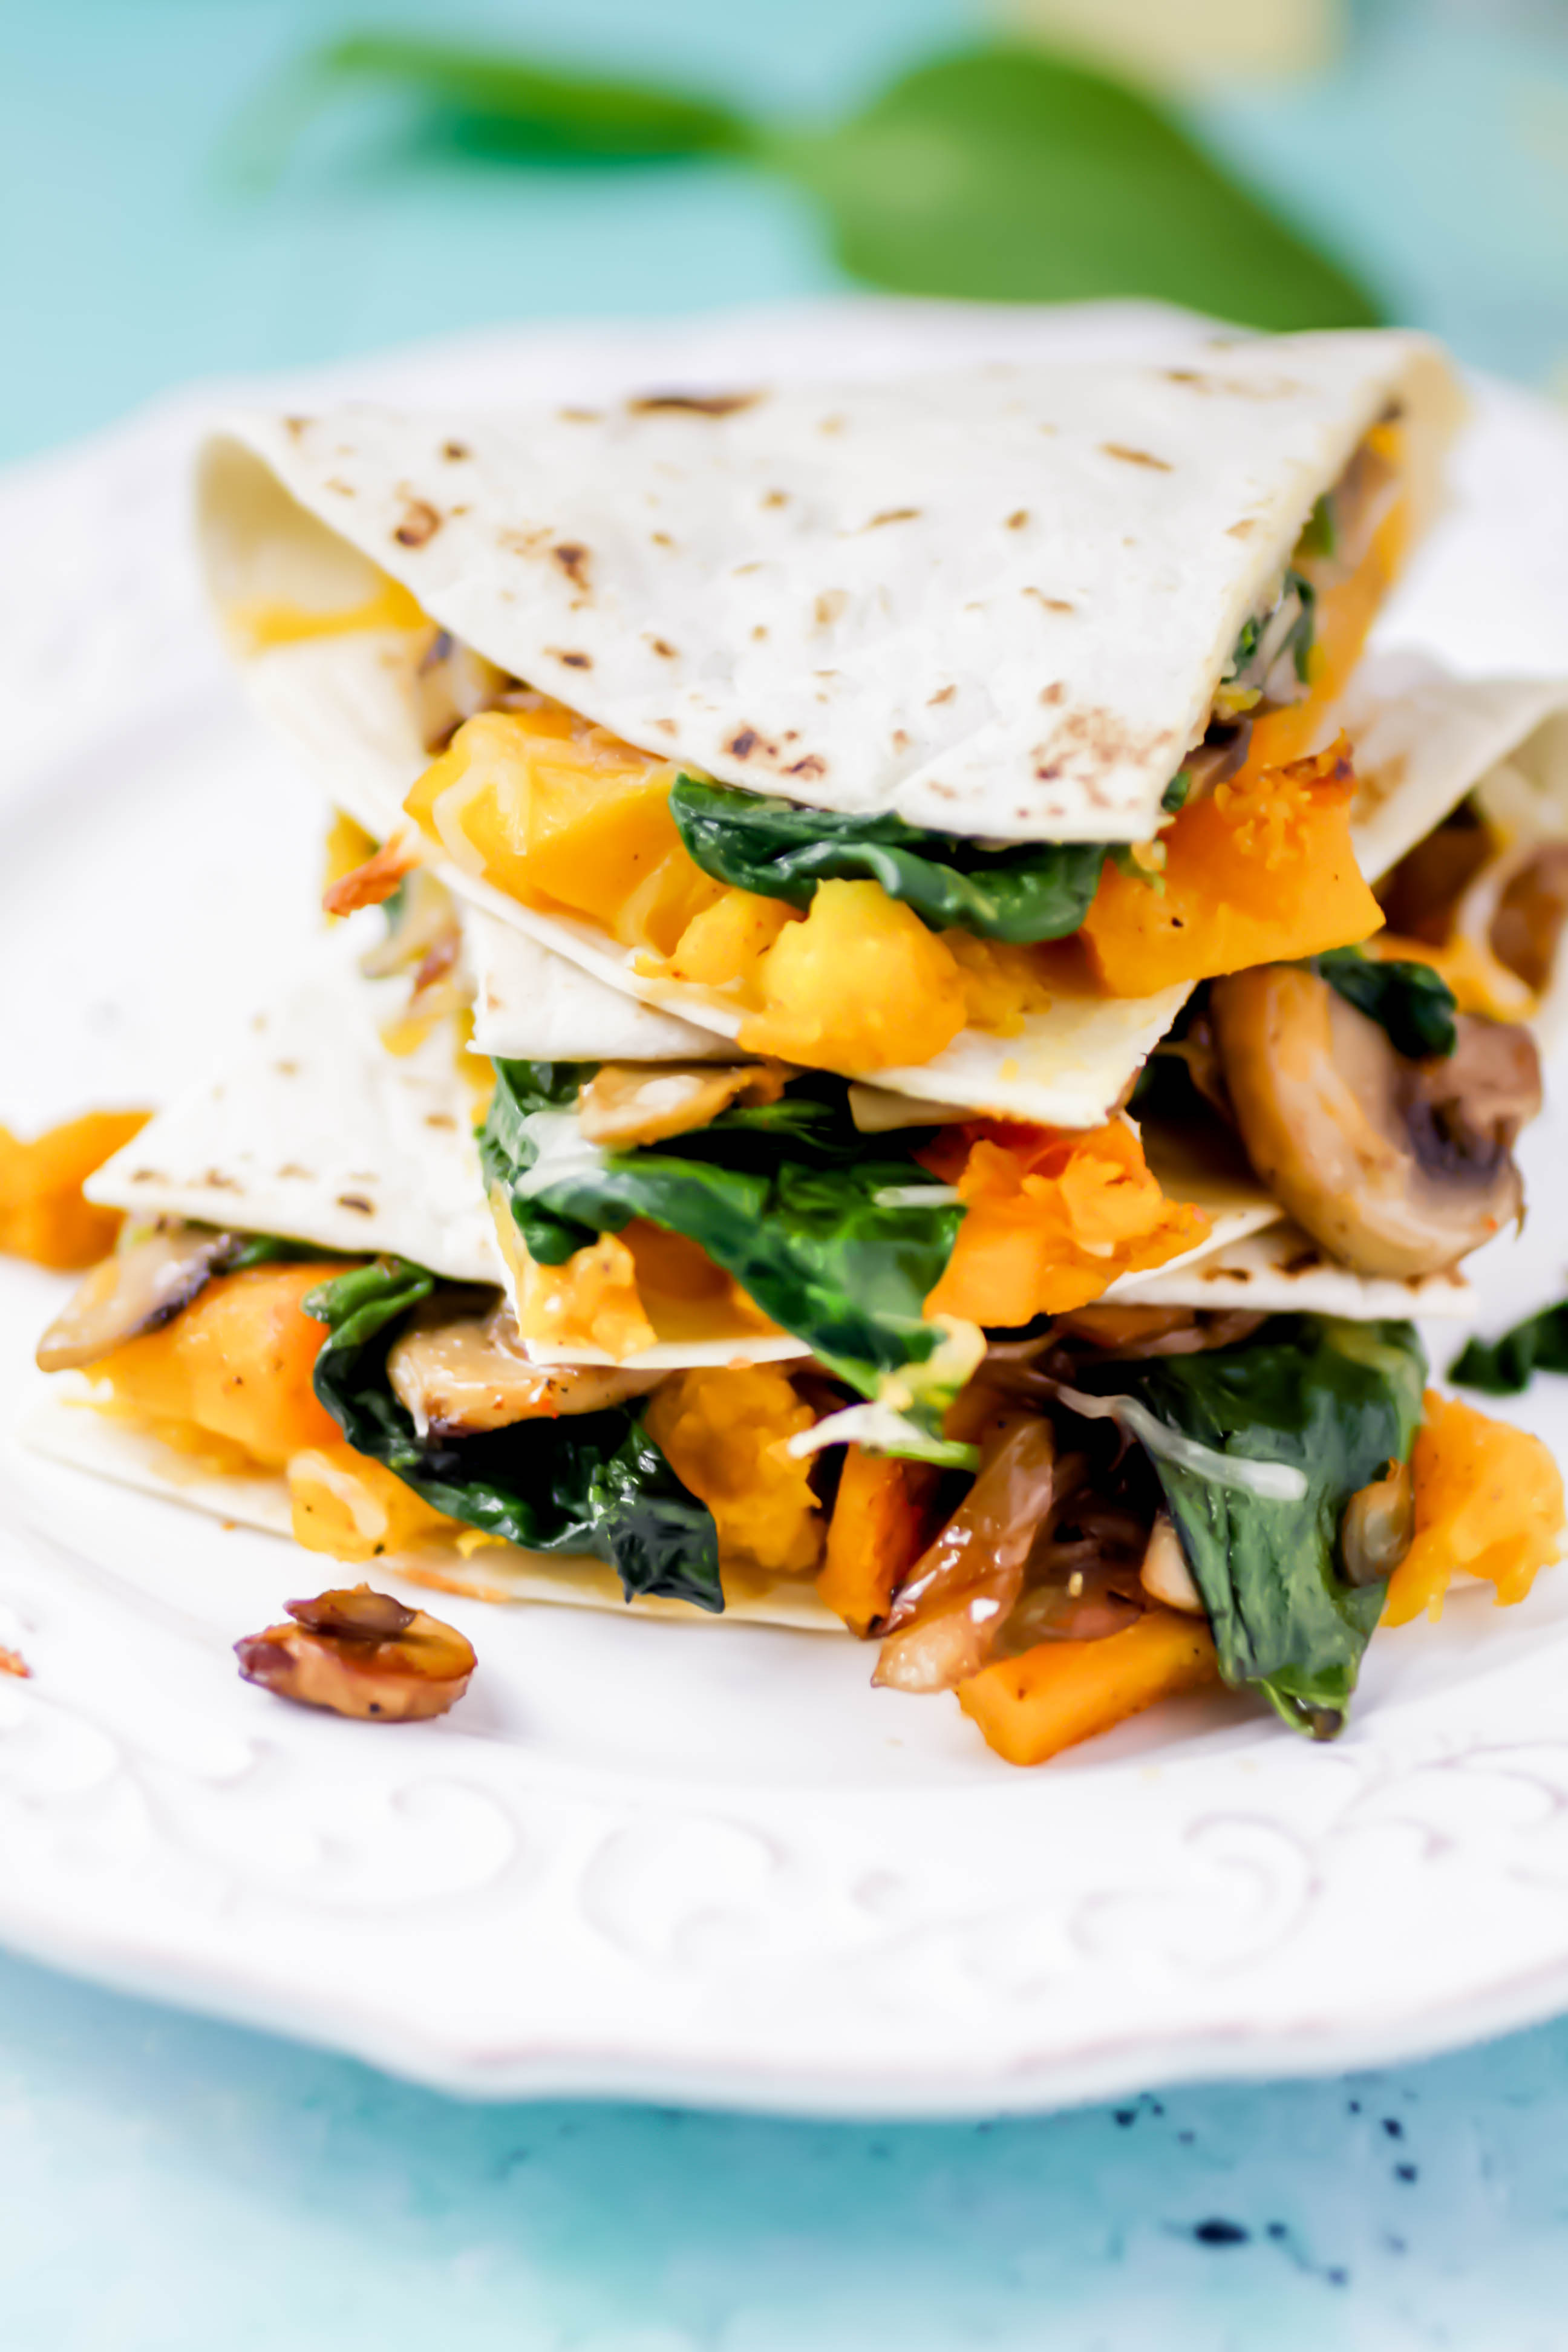 Butternut Squash, Mushroom, Onion, and Spinach Quesadillas stack high for a delightful dish! Butternut Squash, Mushroom, Onion, and Spinach Quesadillas are super-flavorful and easy to make for your next dinner.